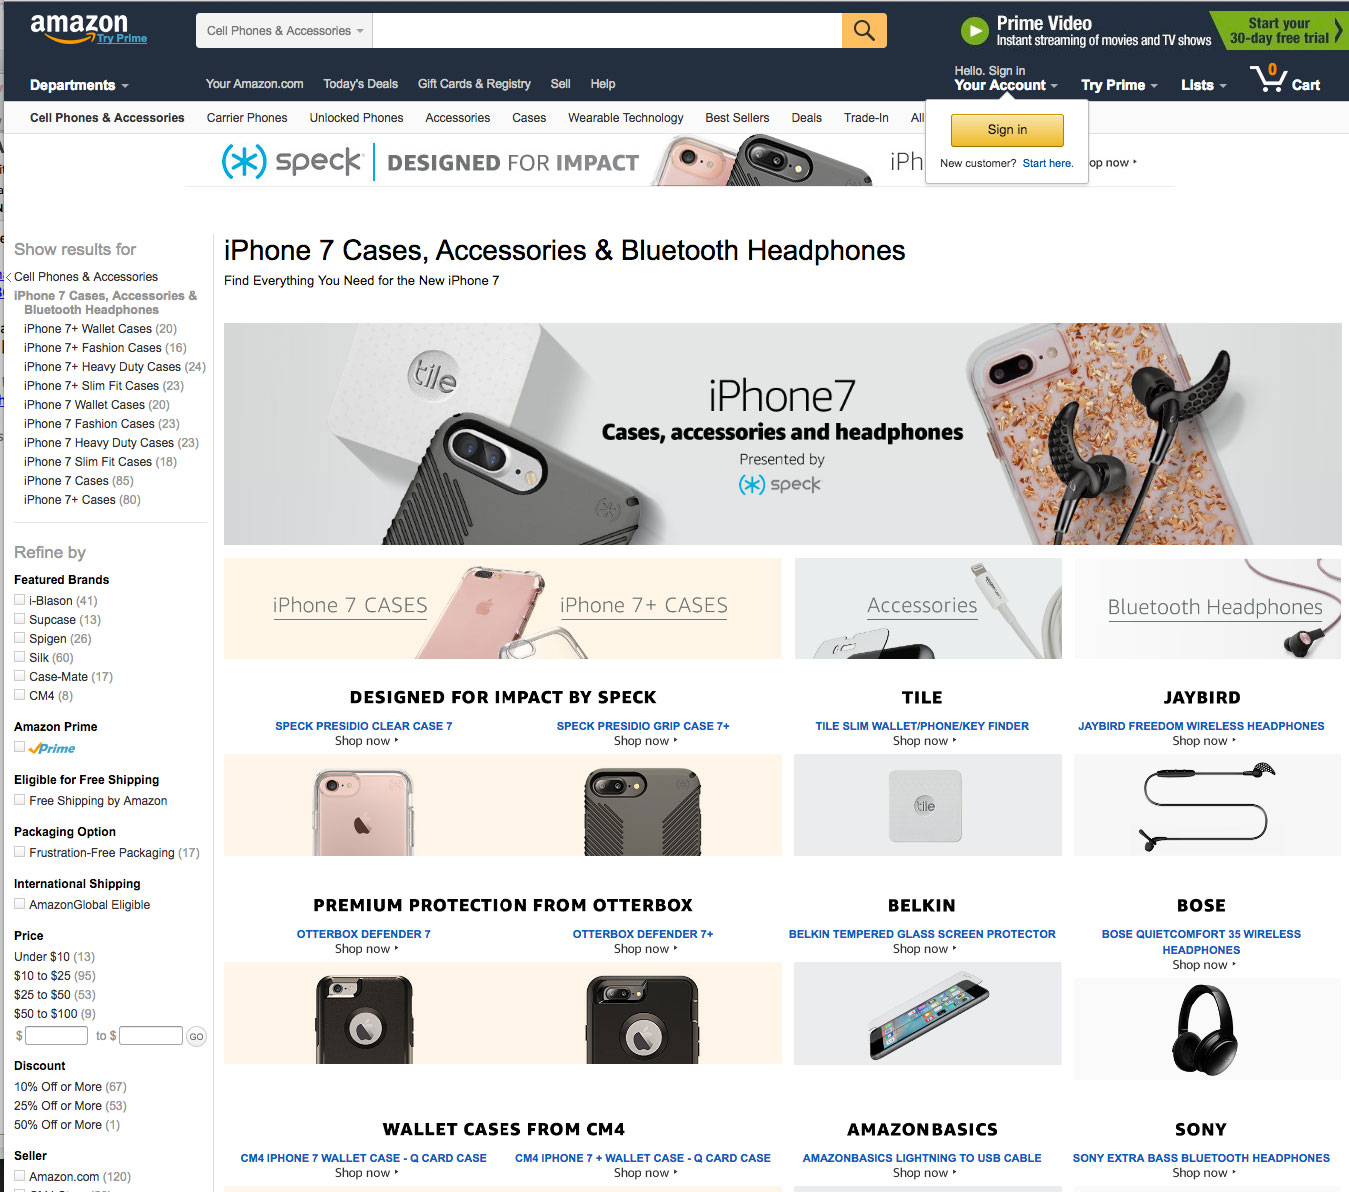 Spoiler: Amazon accidentally unveils iPhone 7 early